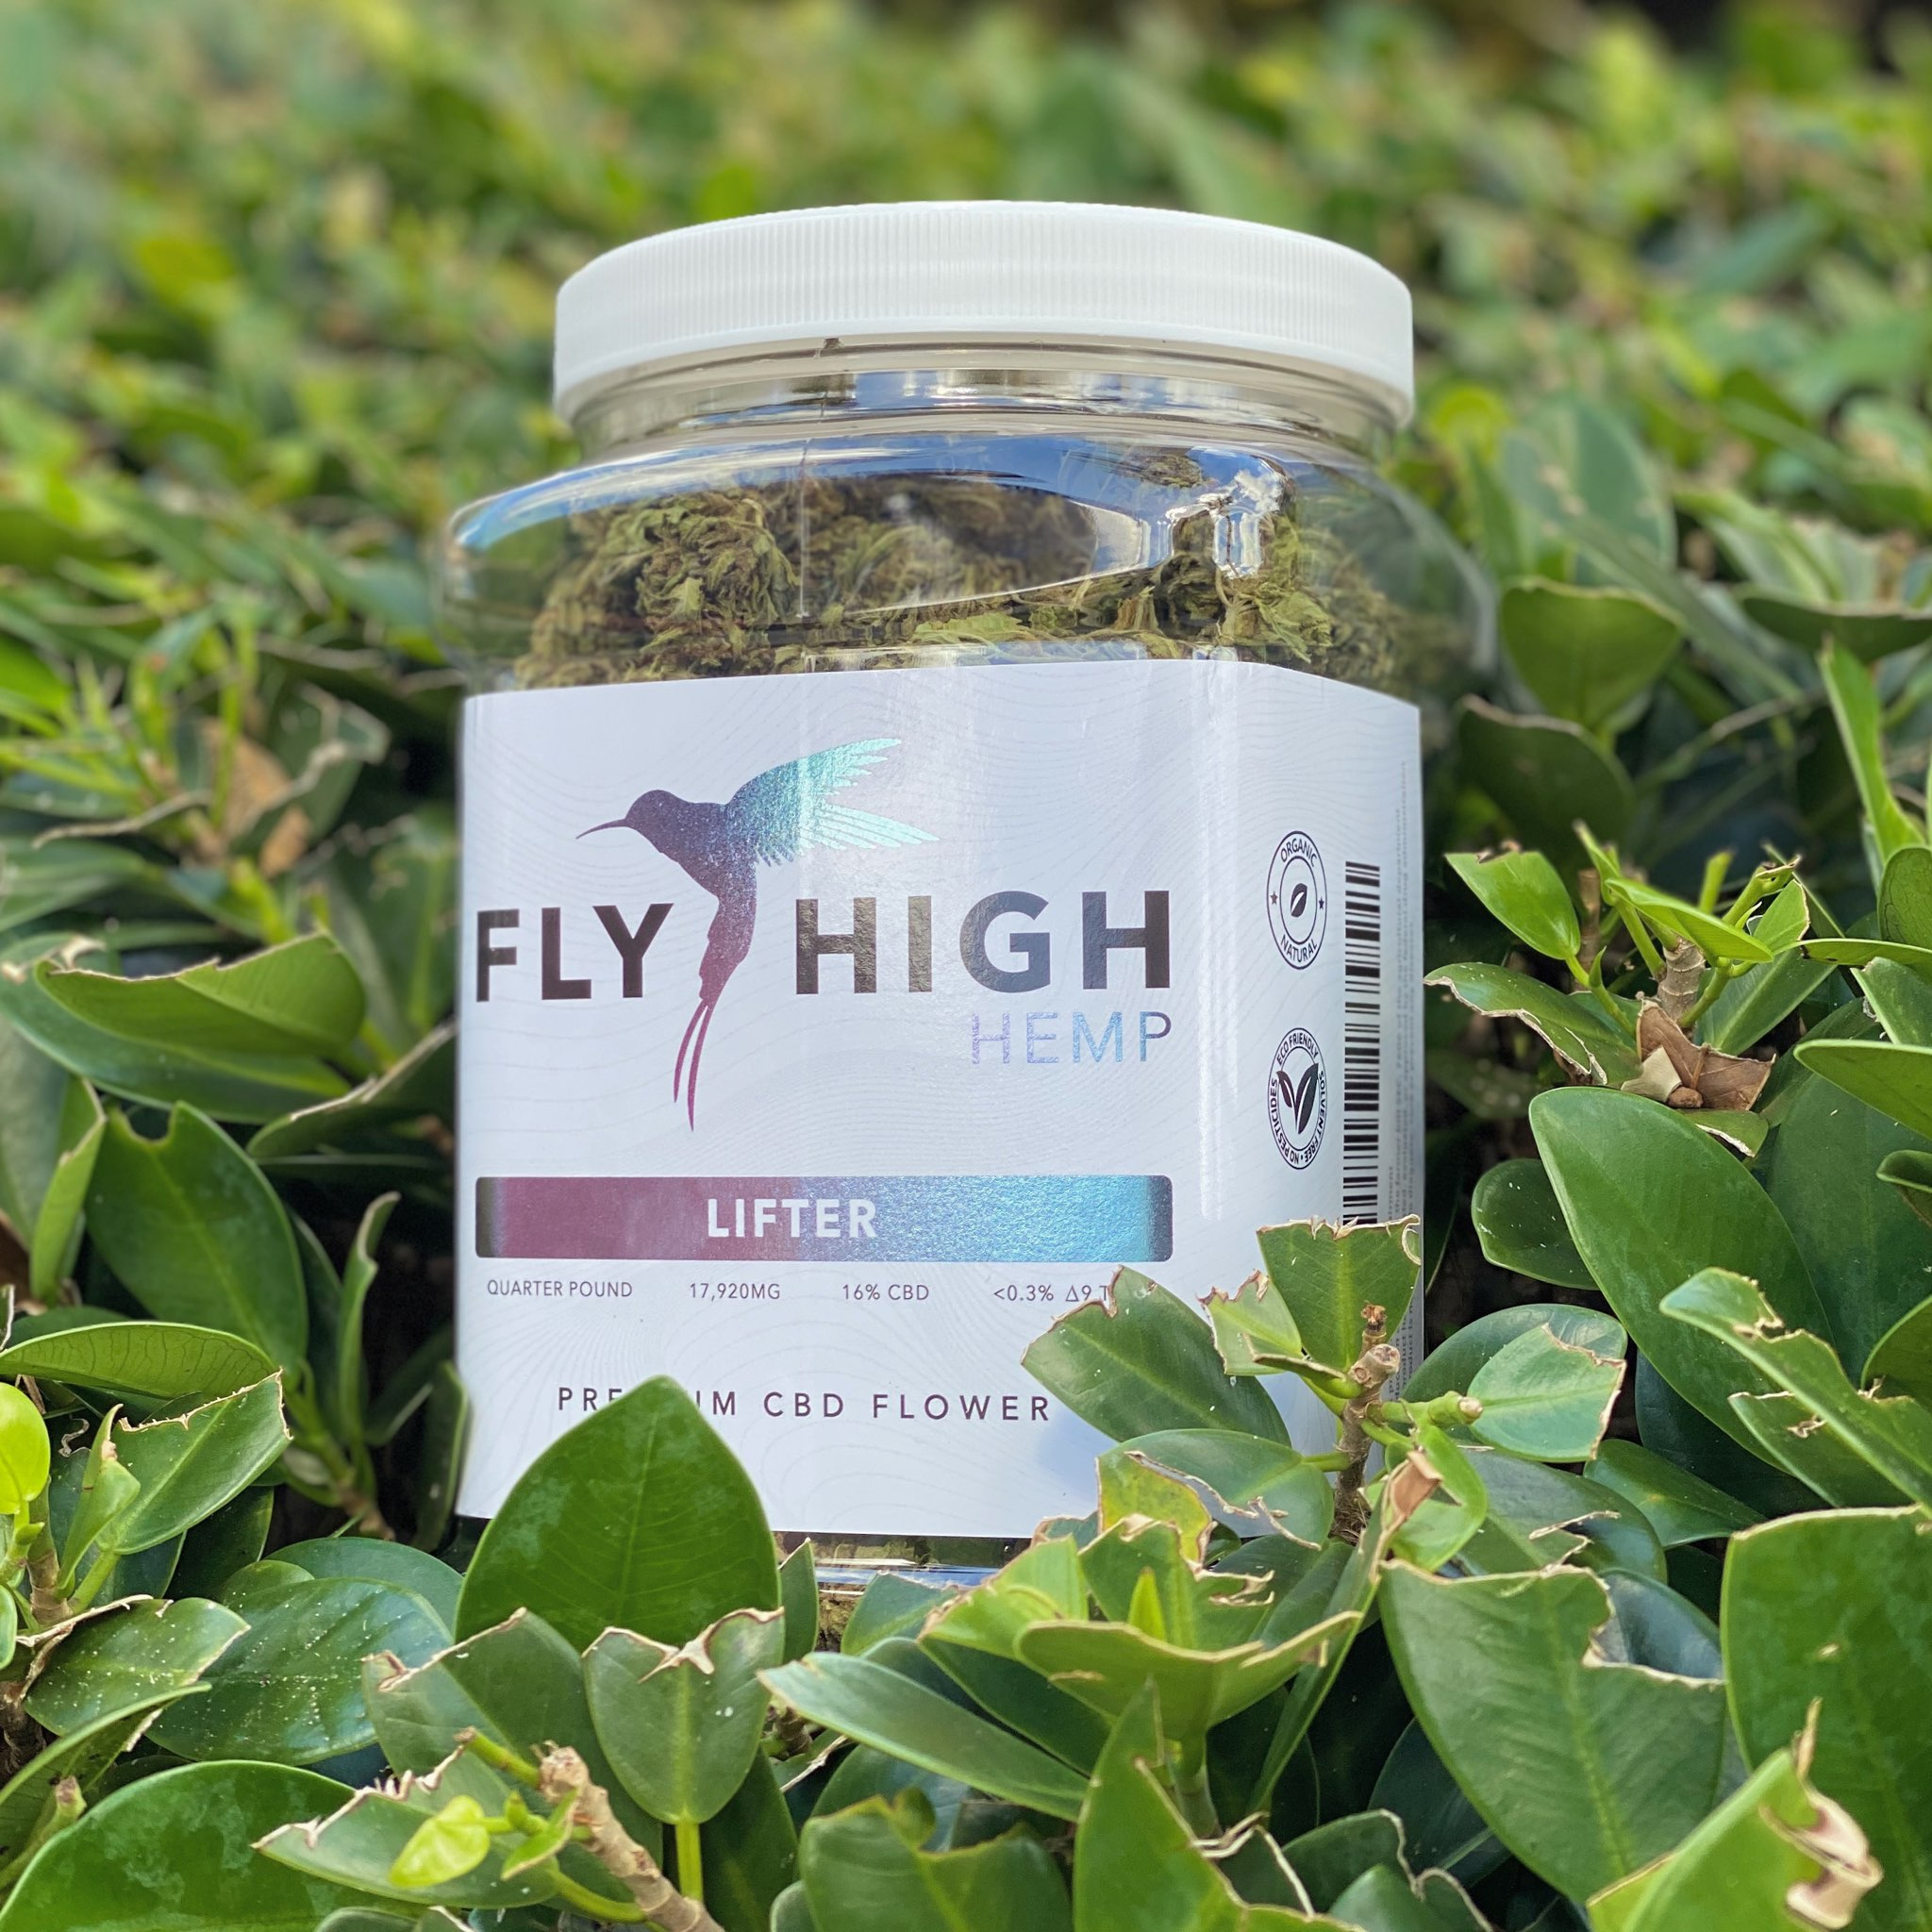 Fly High Hemp CBD Flower Quarter Pound Jars